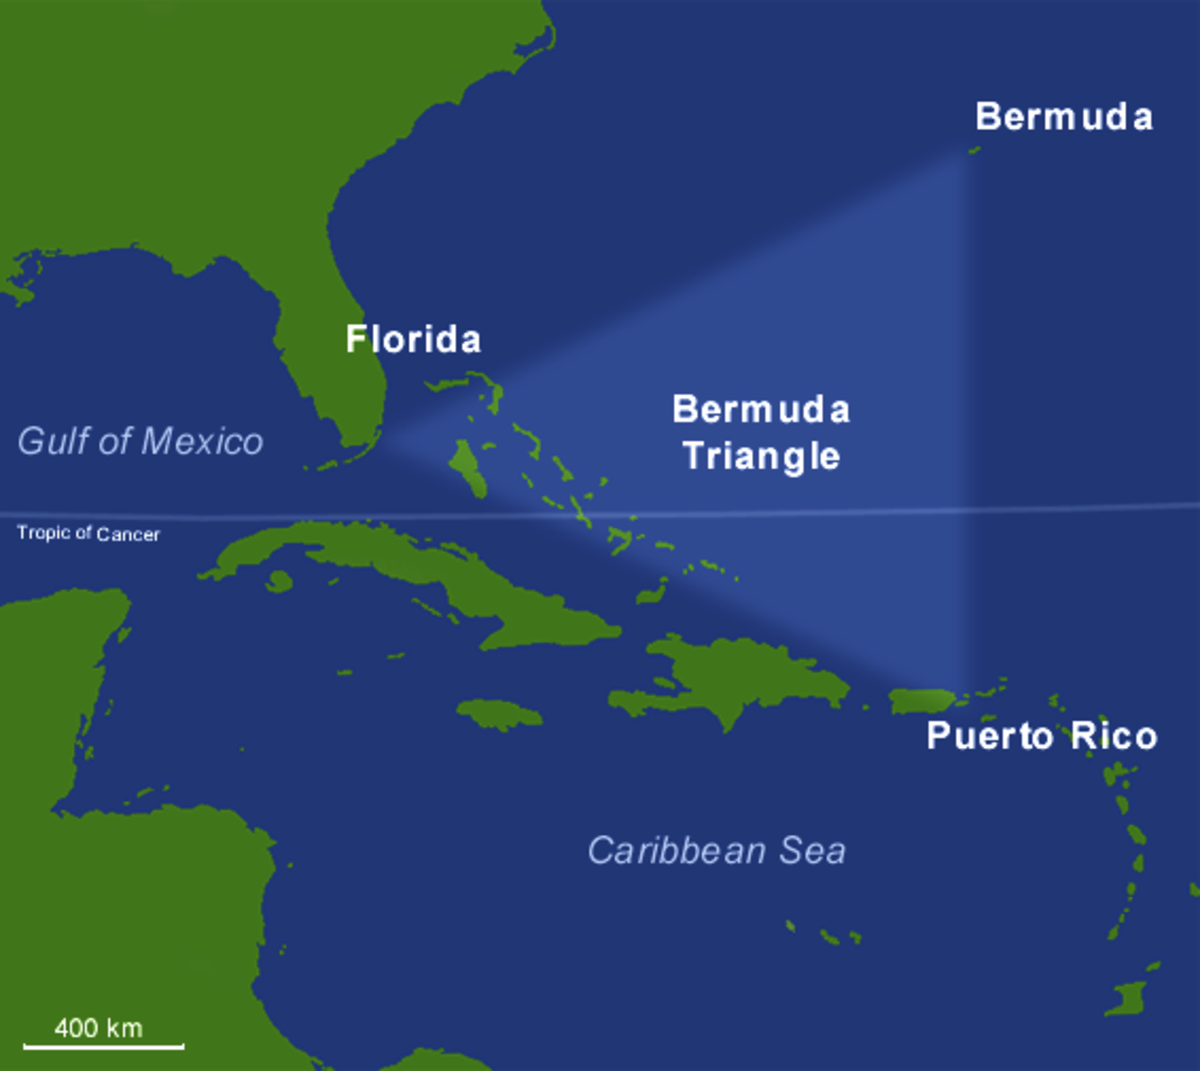 Legends of the Bermuda Triangle